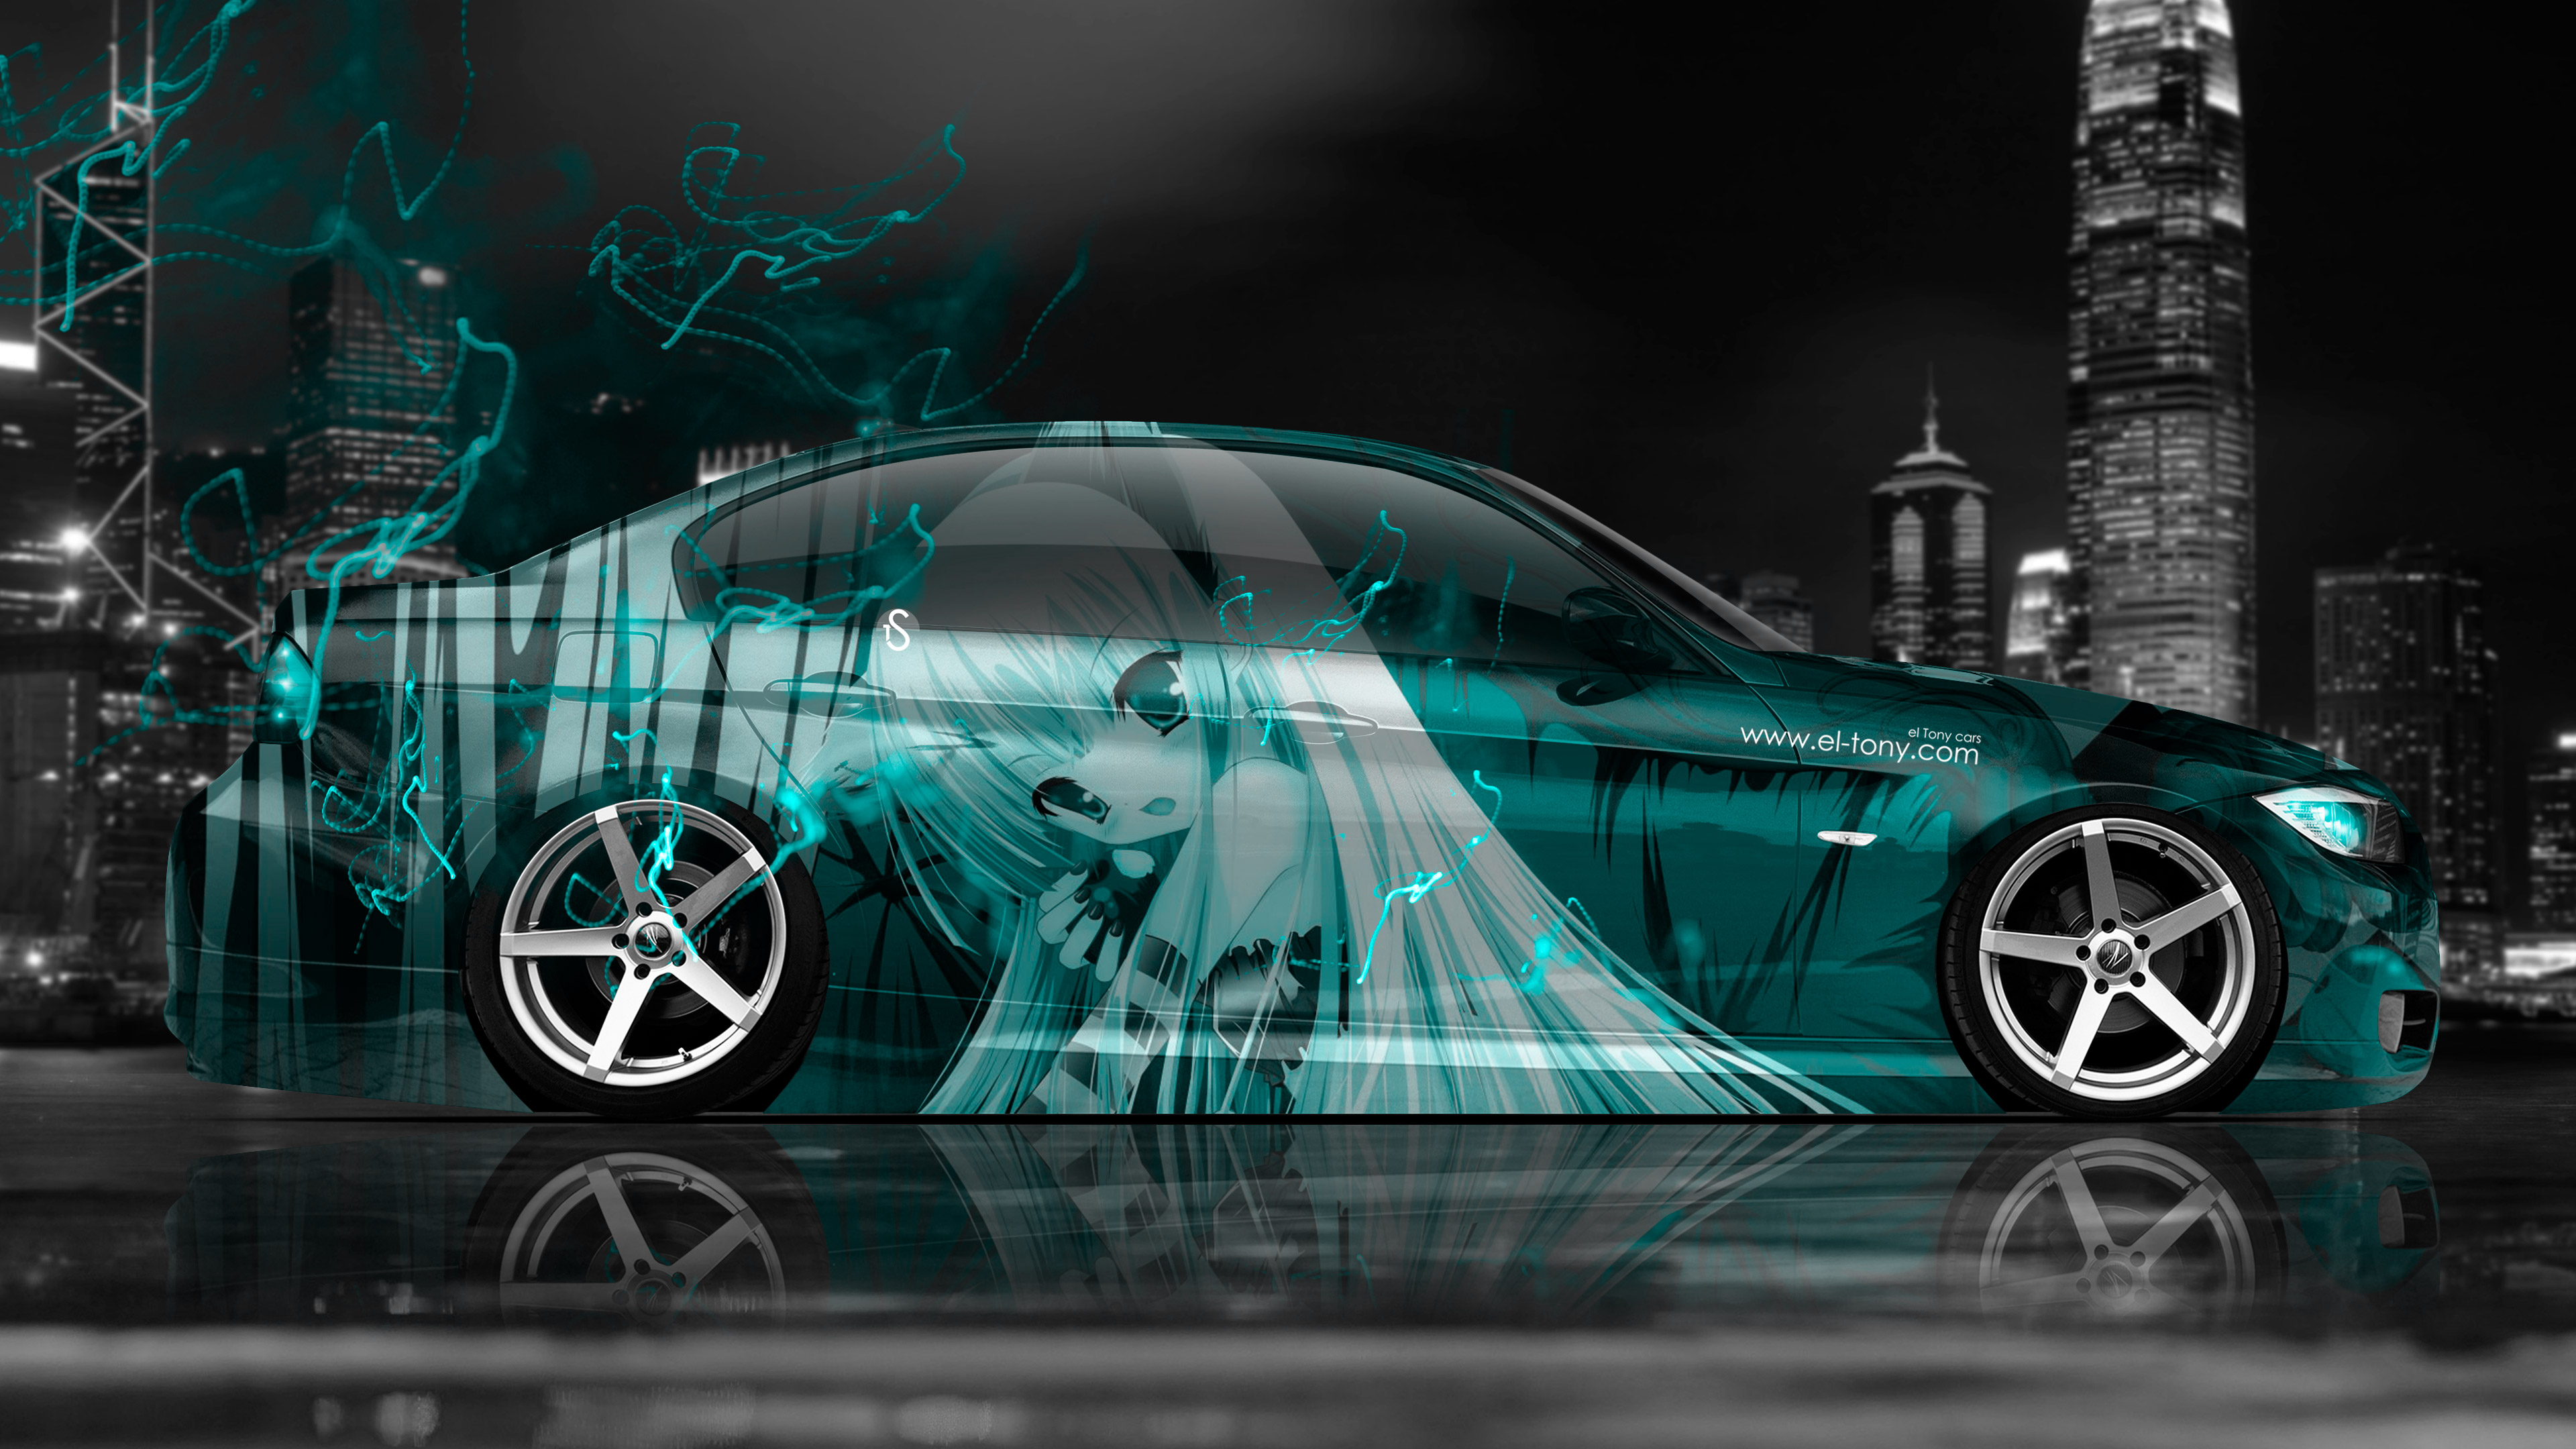 Boy Girl Sketch Wallpaper 4k Bmw E90 Side Anime Girl Aerography City Energy Car 2015